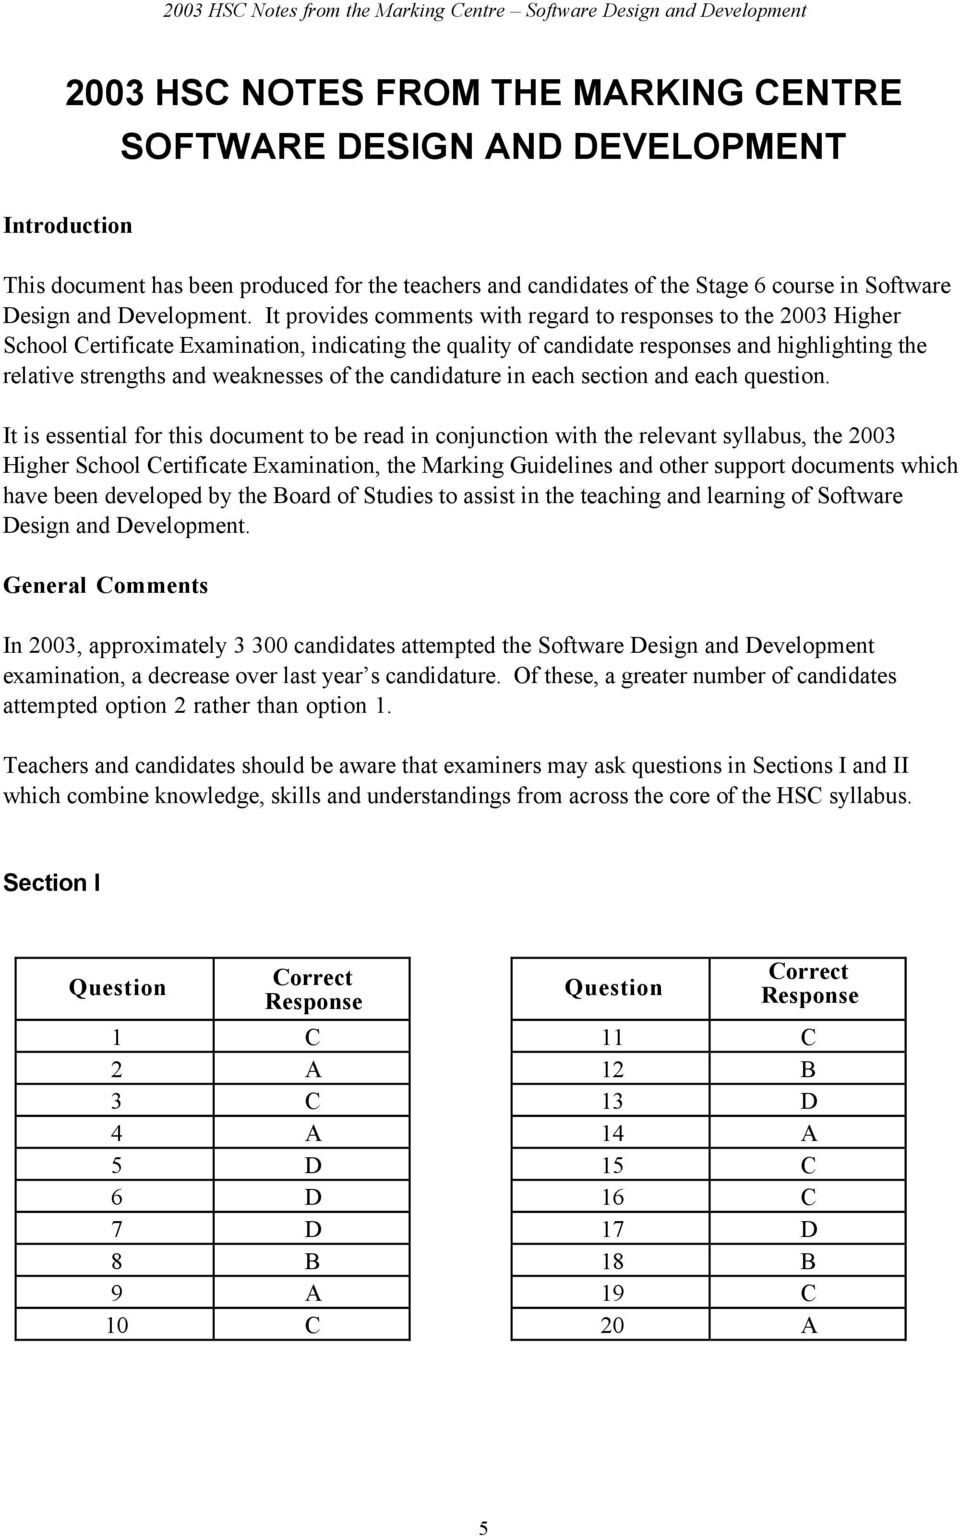 2003 Hsc Notes From The Marking Centre Software Design And Development Pdf Free Download